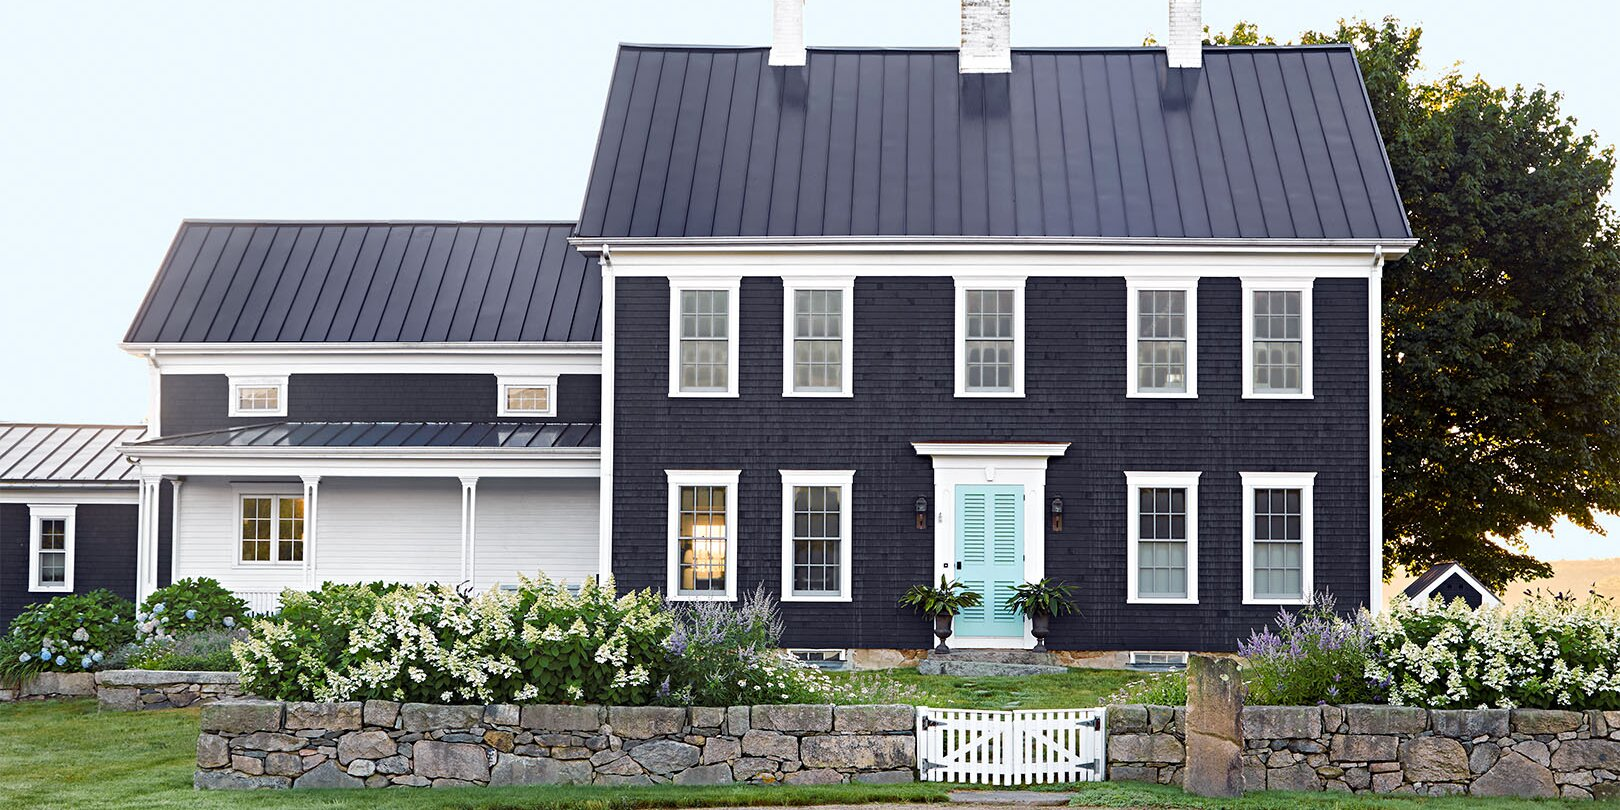 The Top 10 Exterior Paint Color Trends to Try in 2021